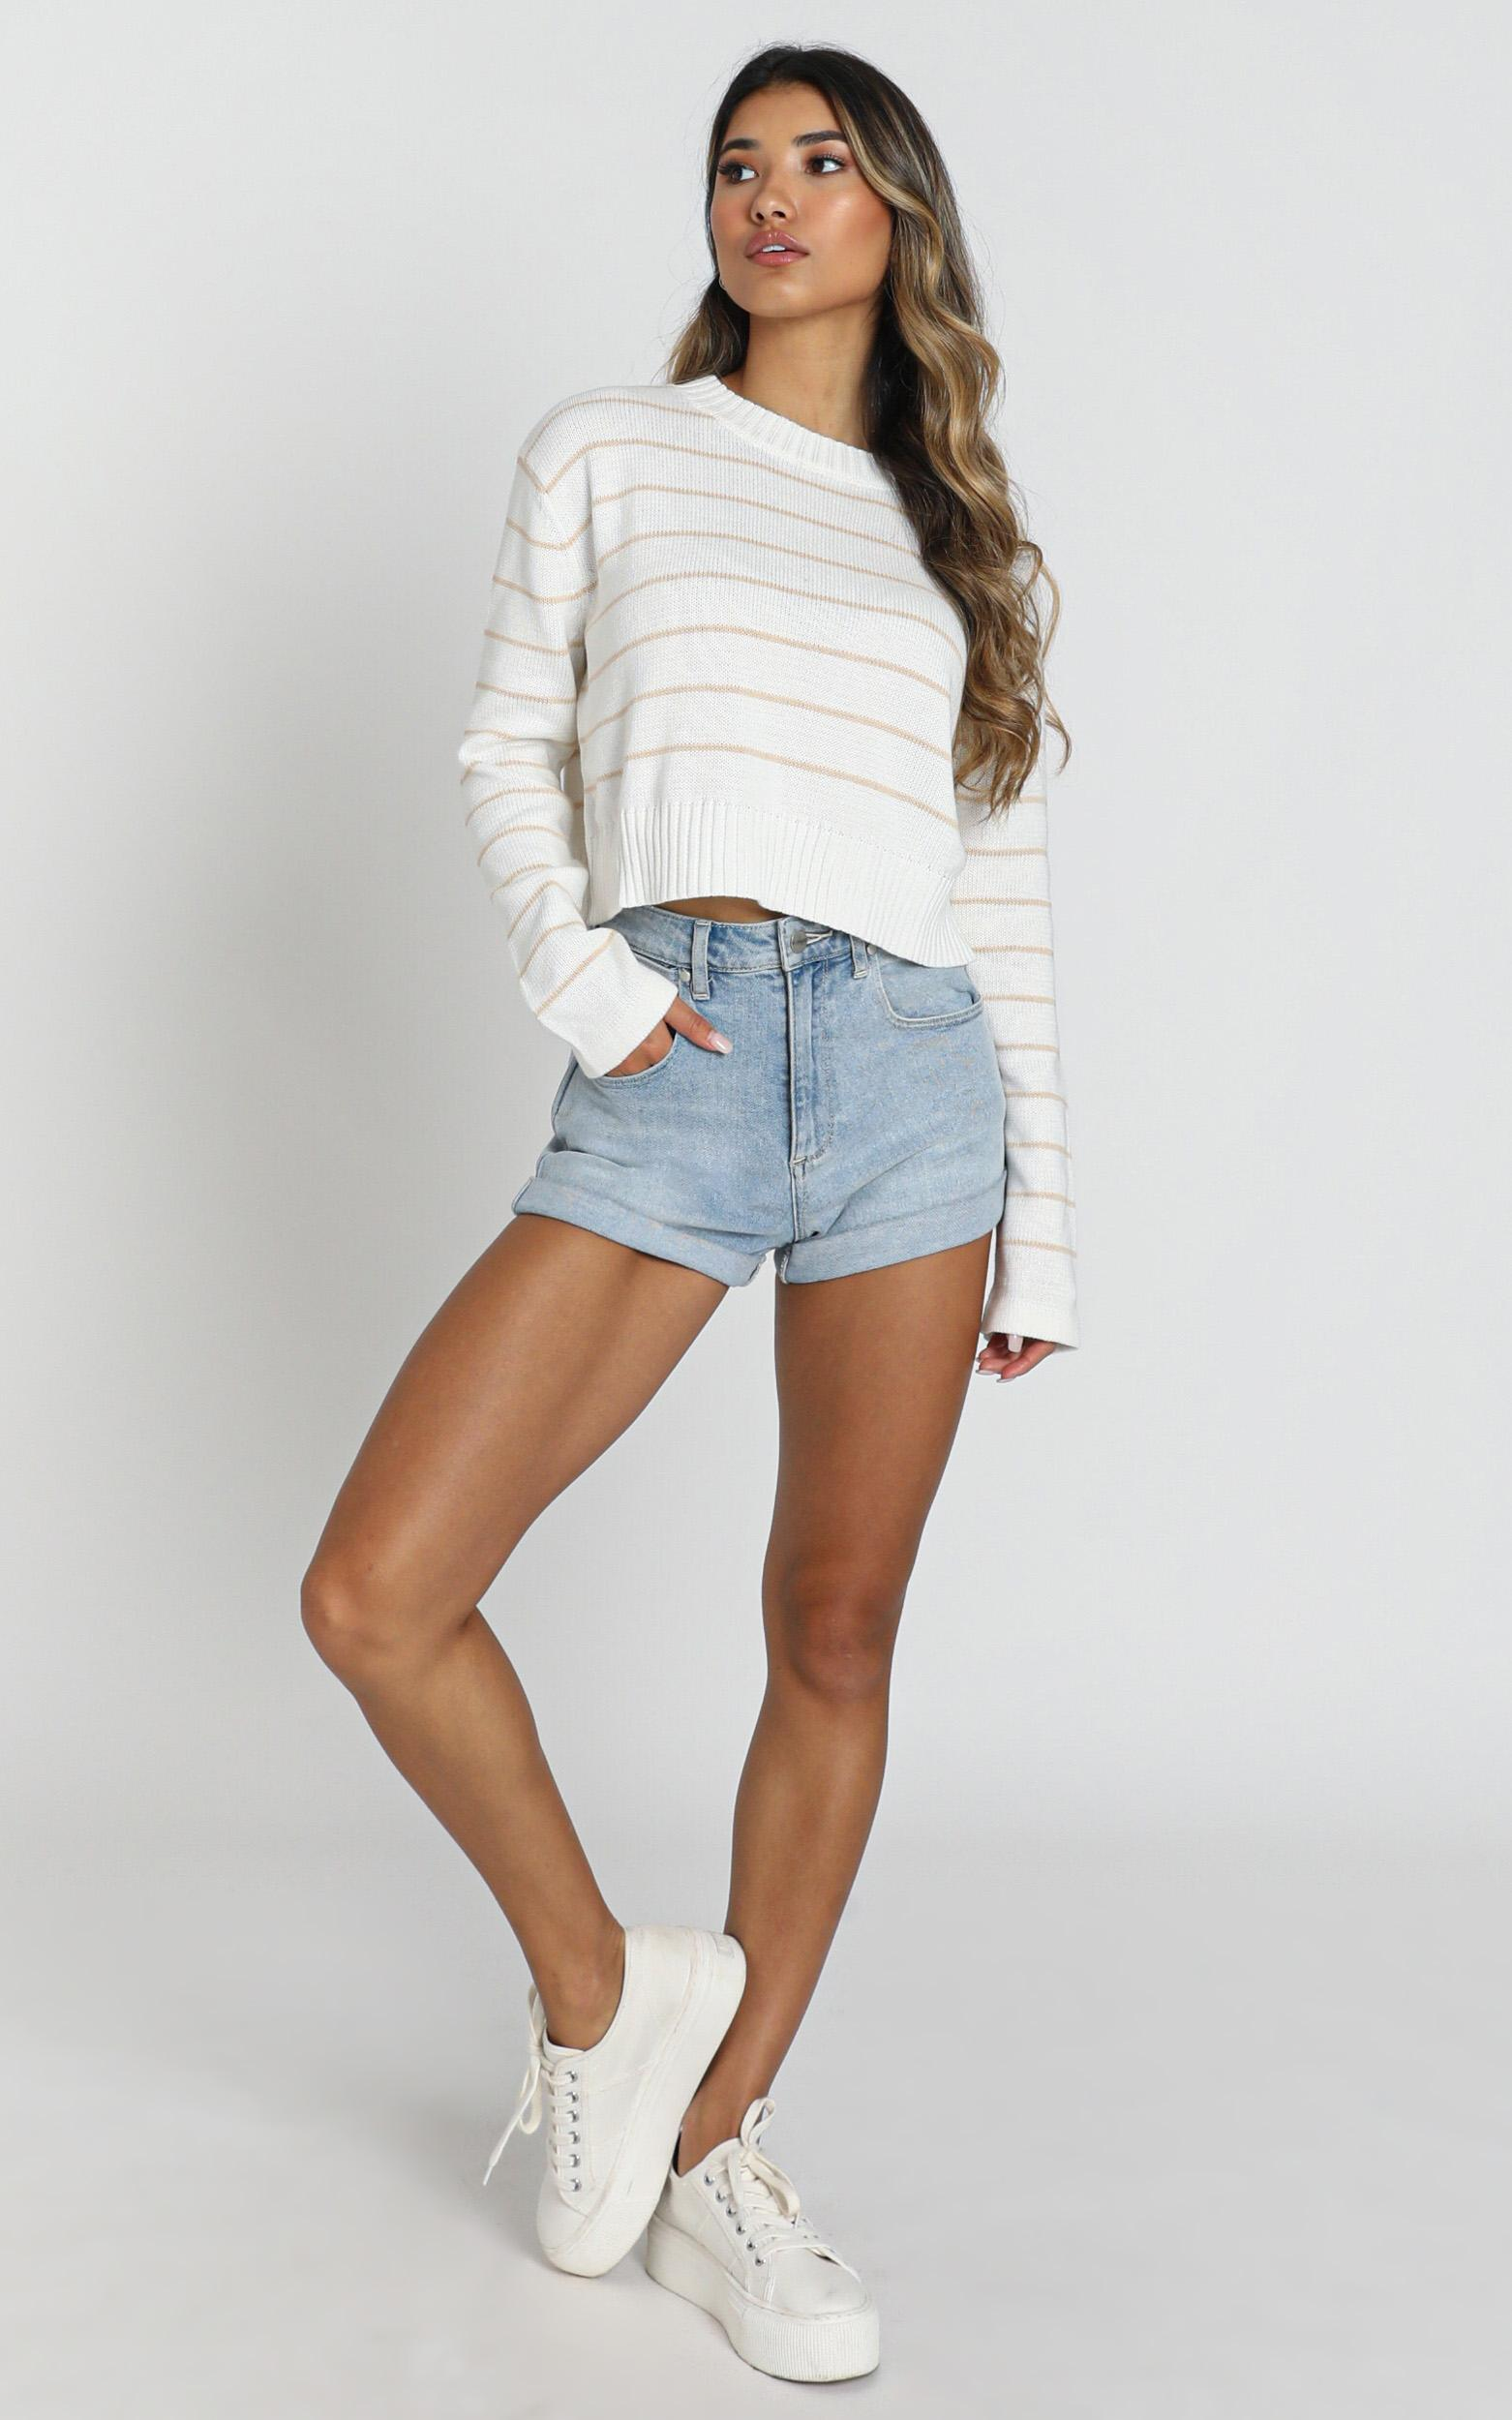 sweeter with love Knit Jumper in white - 20 (XXXXL), White, hi-res image number null